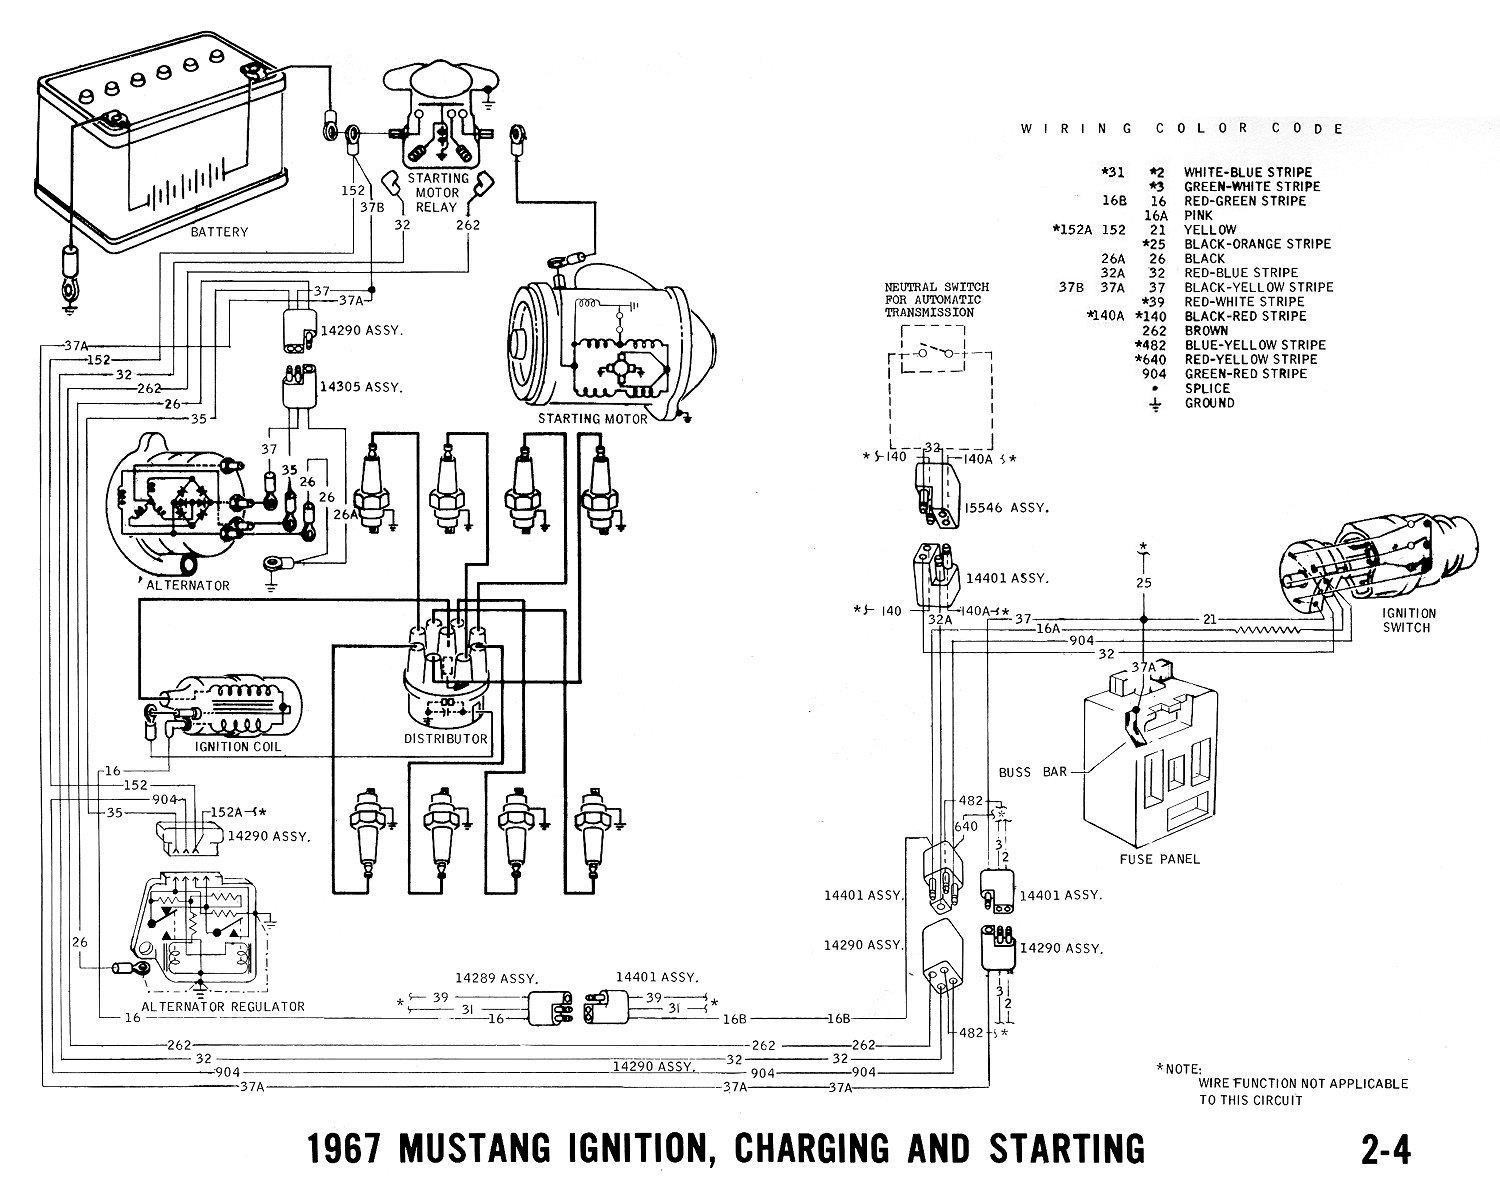 ge washer wiring diagram mod wjrr4170e4ww best wiring library rh 177 princestaash org